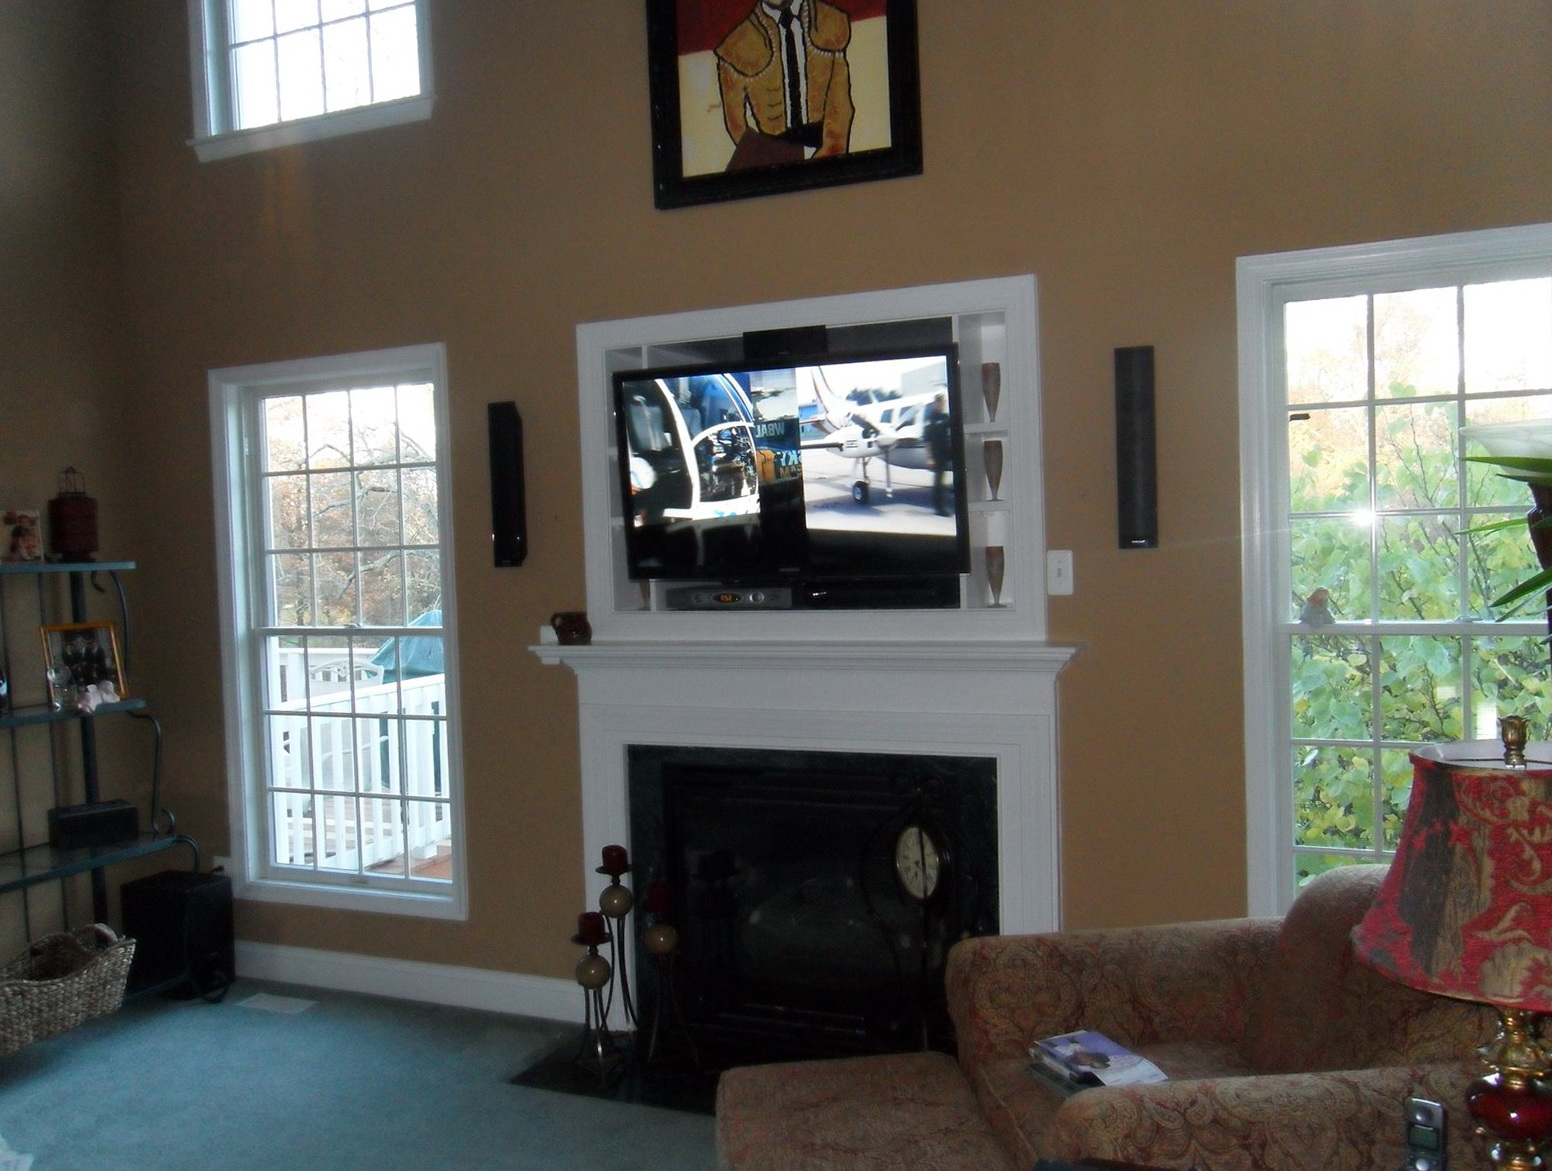 Mounting Tv Over Fireplace Where To Put Cable Box Home Design Ideas